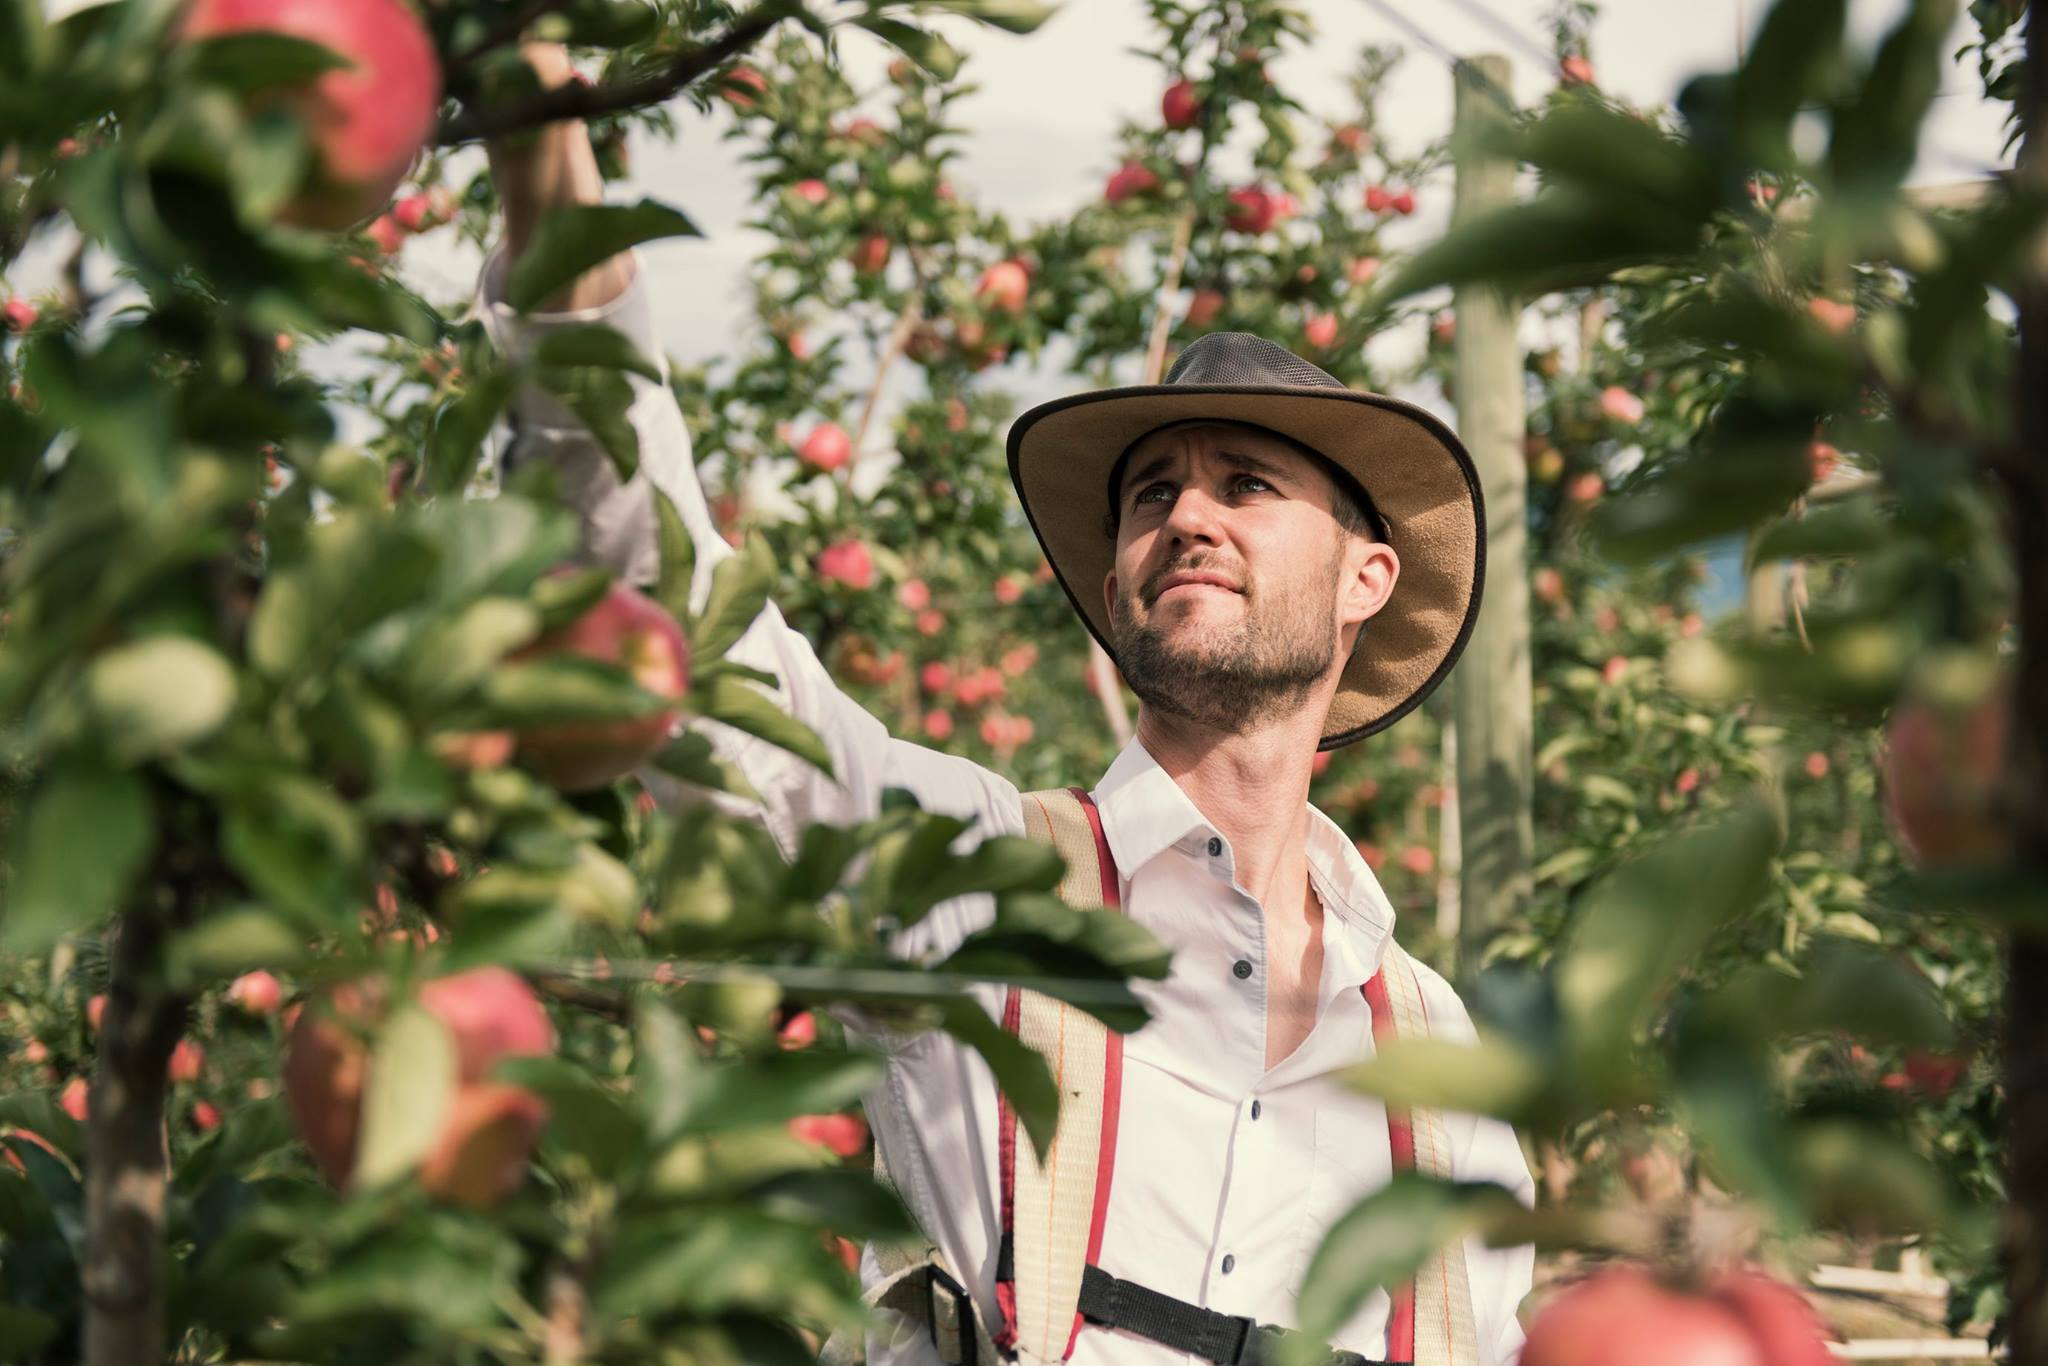 My husband Steve Brown is a hard working orchardist who spends his days at Happy Valley Harvest – our high-density apple orchard near Summerland.